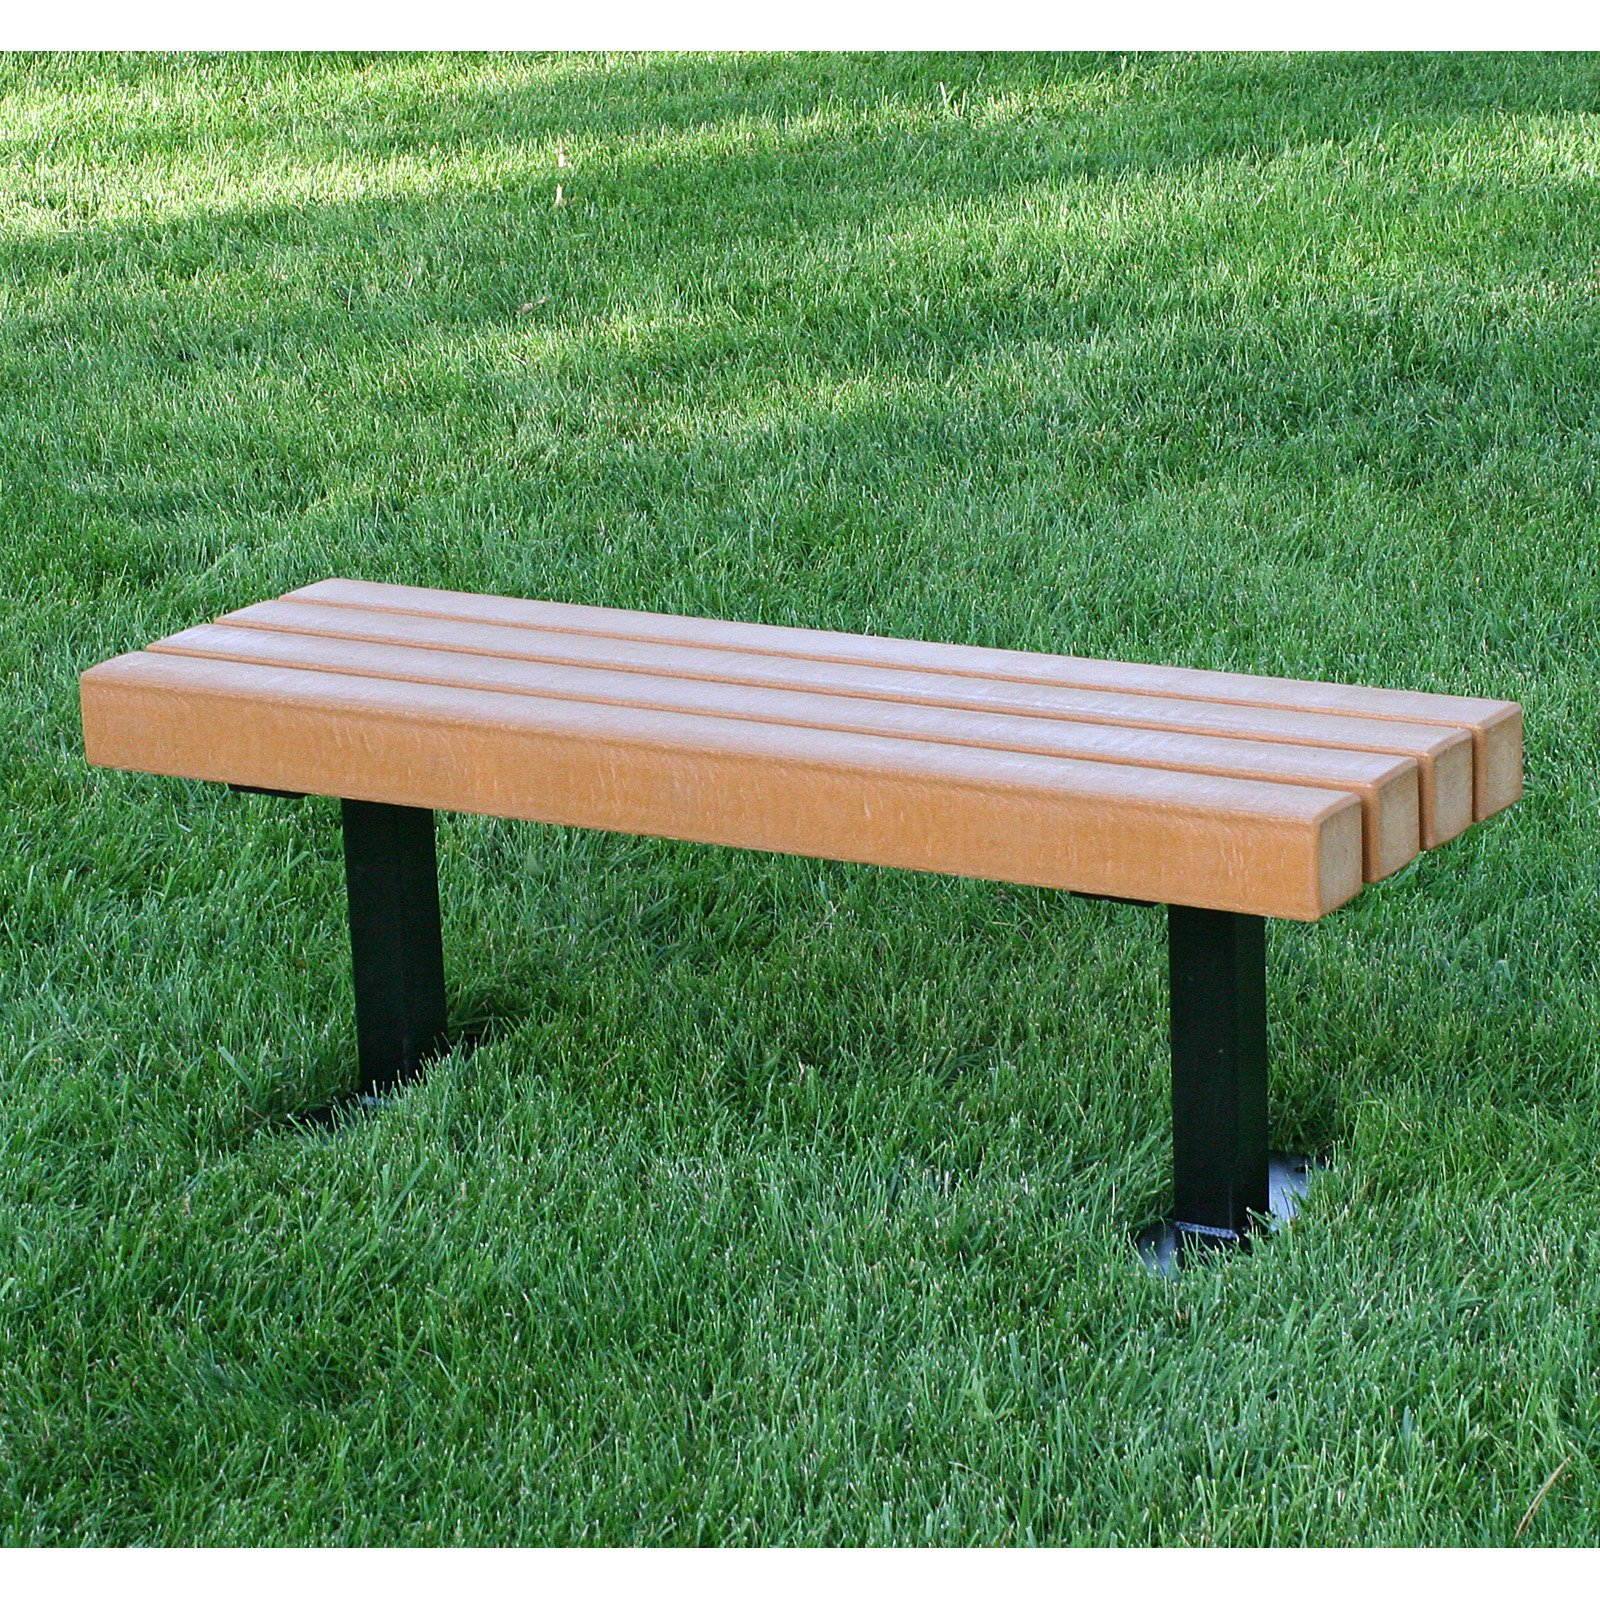 JP Trailside Recycled Plastic Commercial Backless Bench